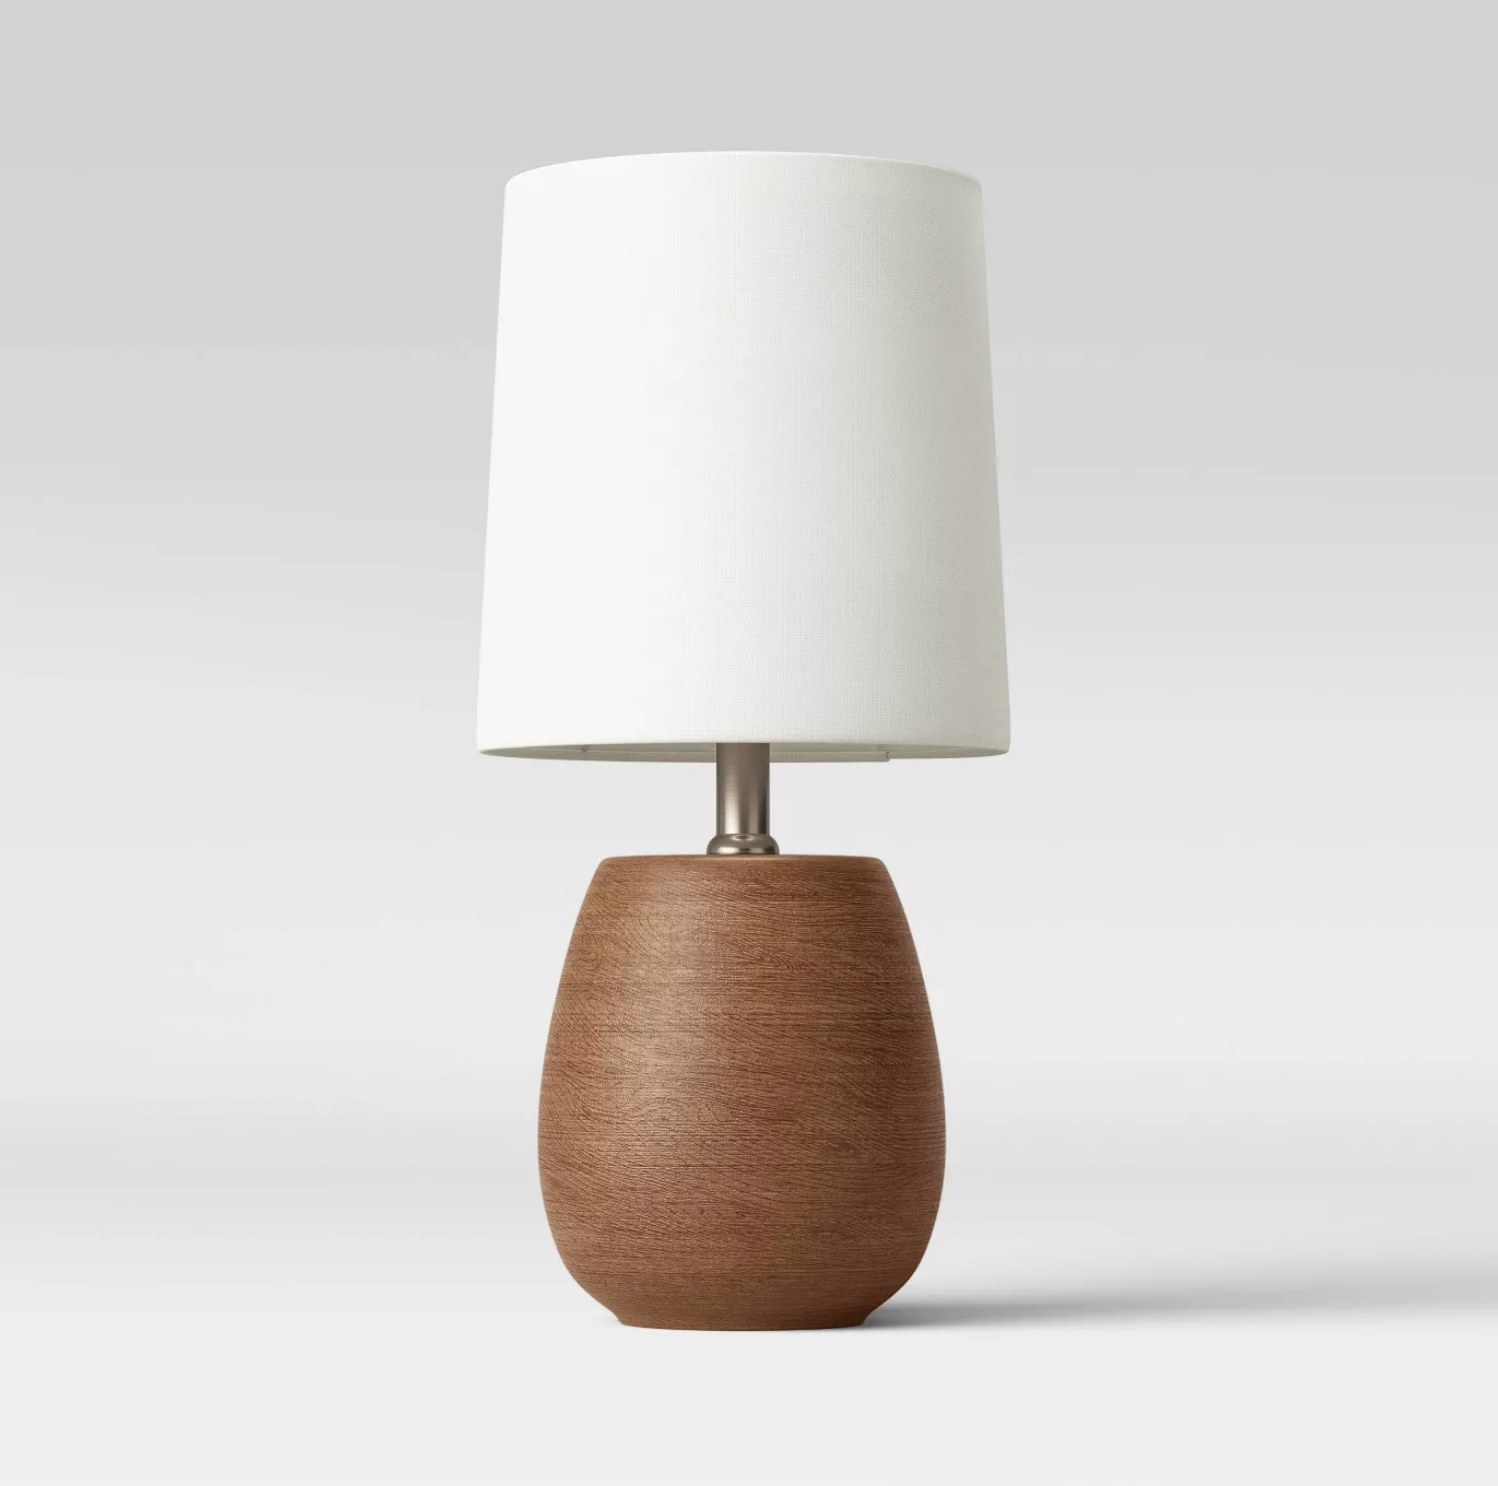 The lamp with a brown finish